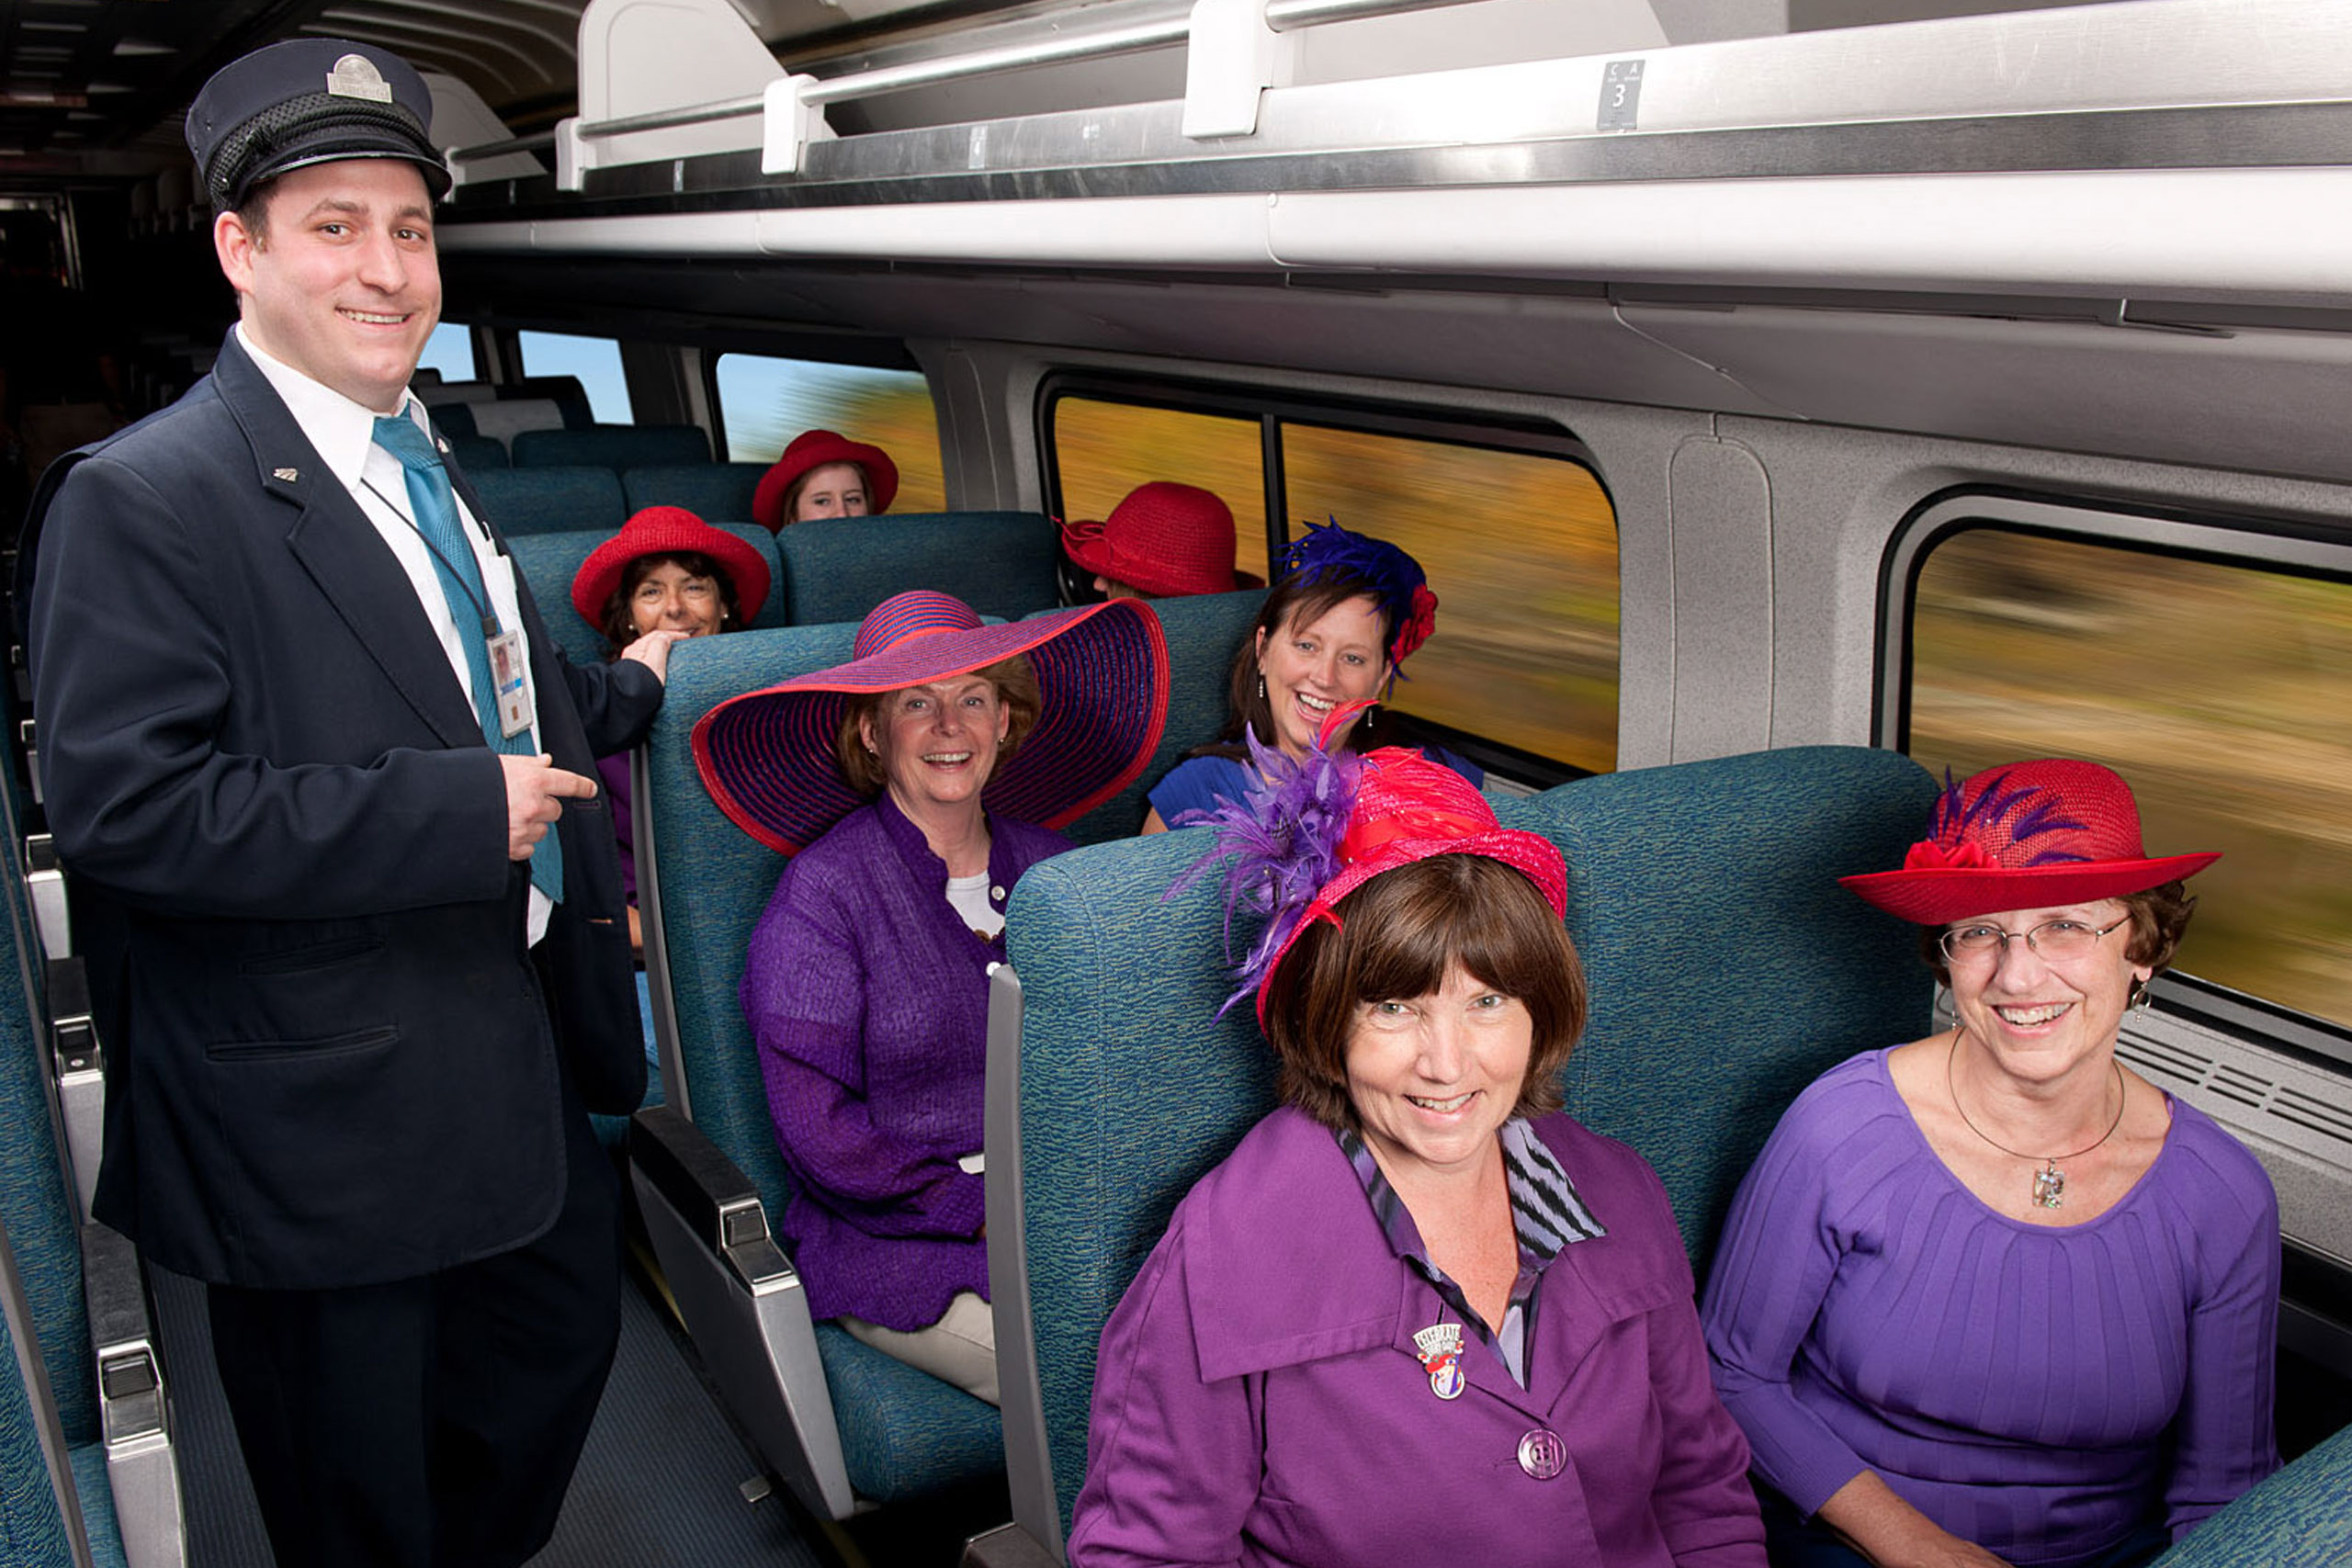 Women with matching clothing and hats ride train